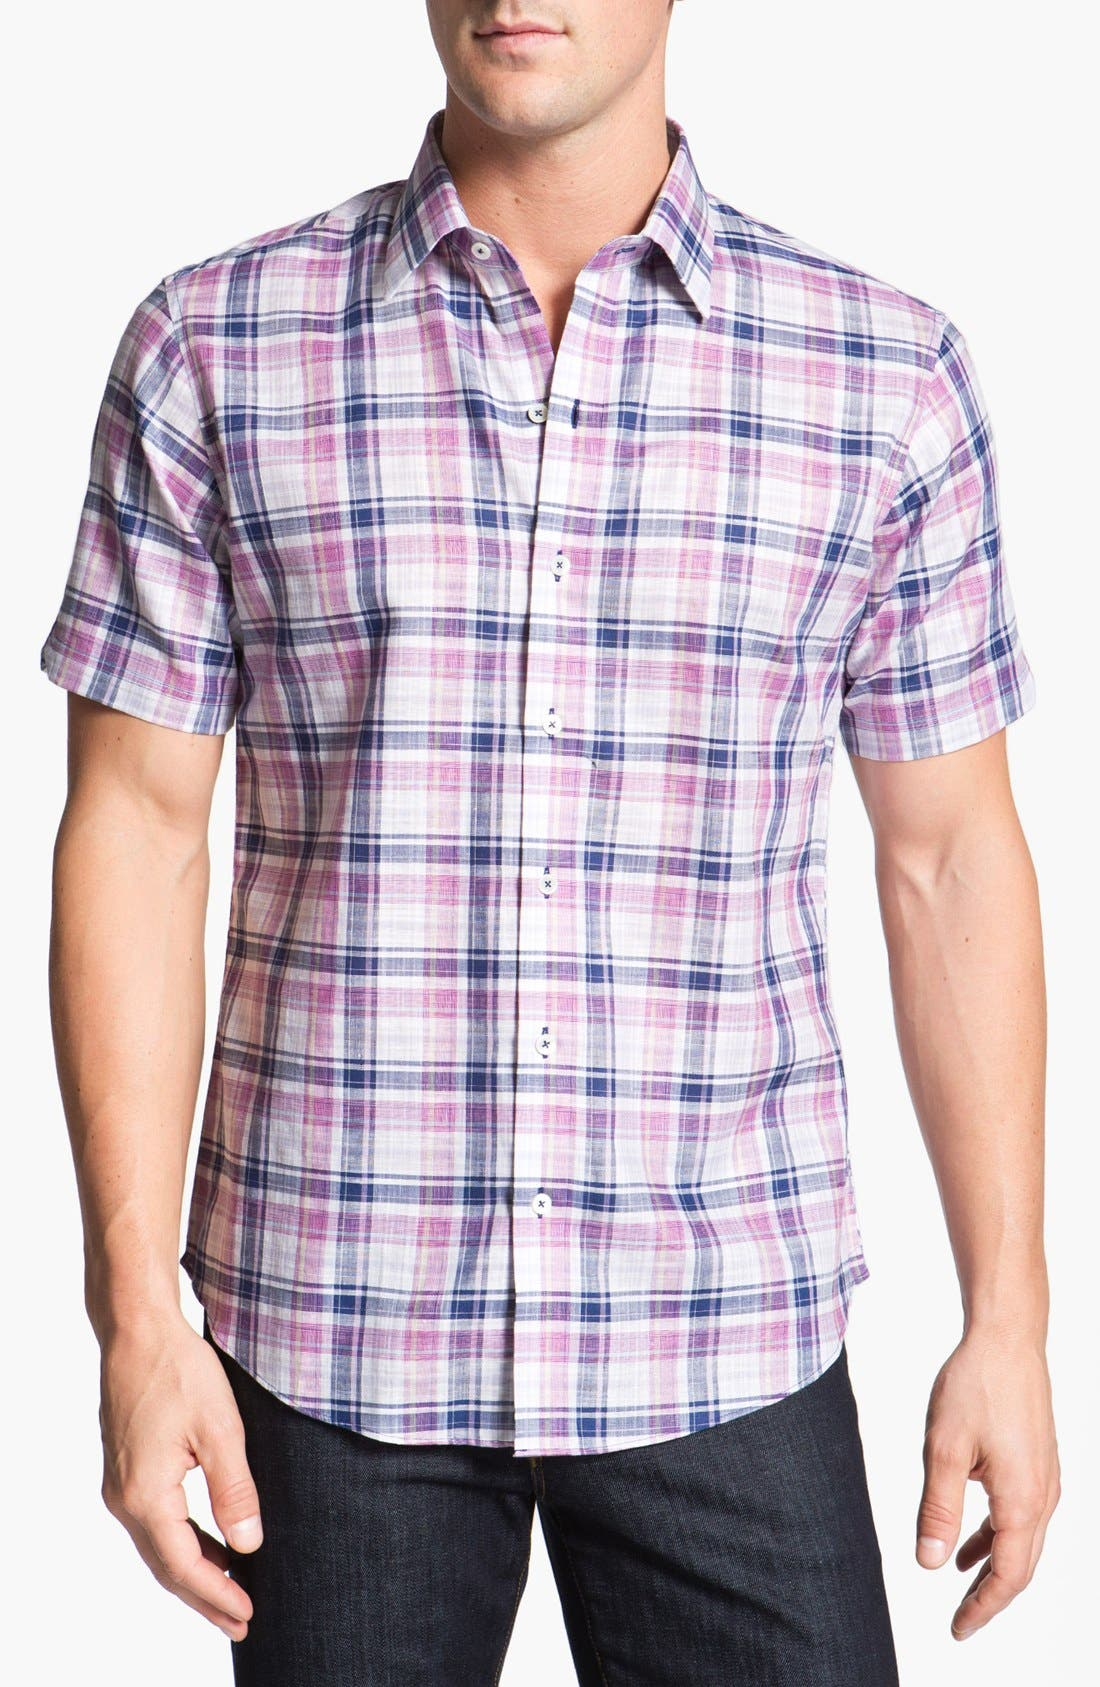 Alternate Image 1 Selected - Zachary Prell 'Colding' Short Sleeve Sport Shirt